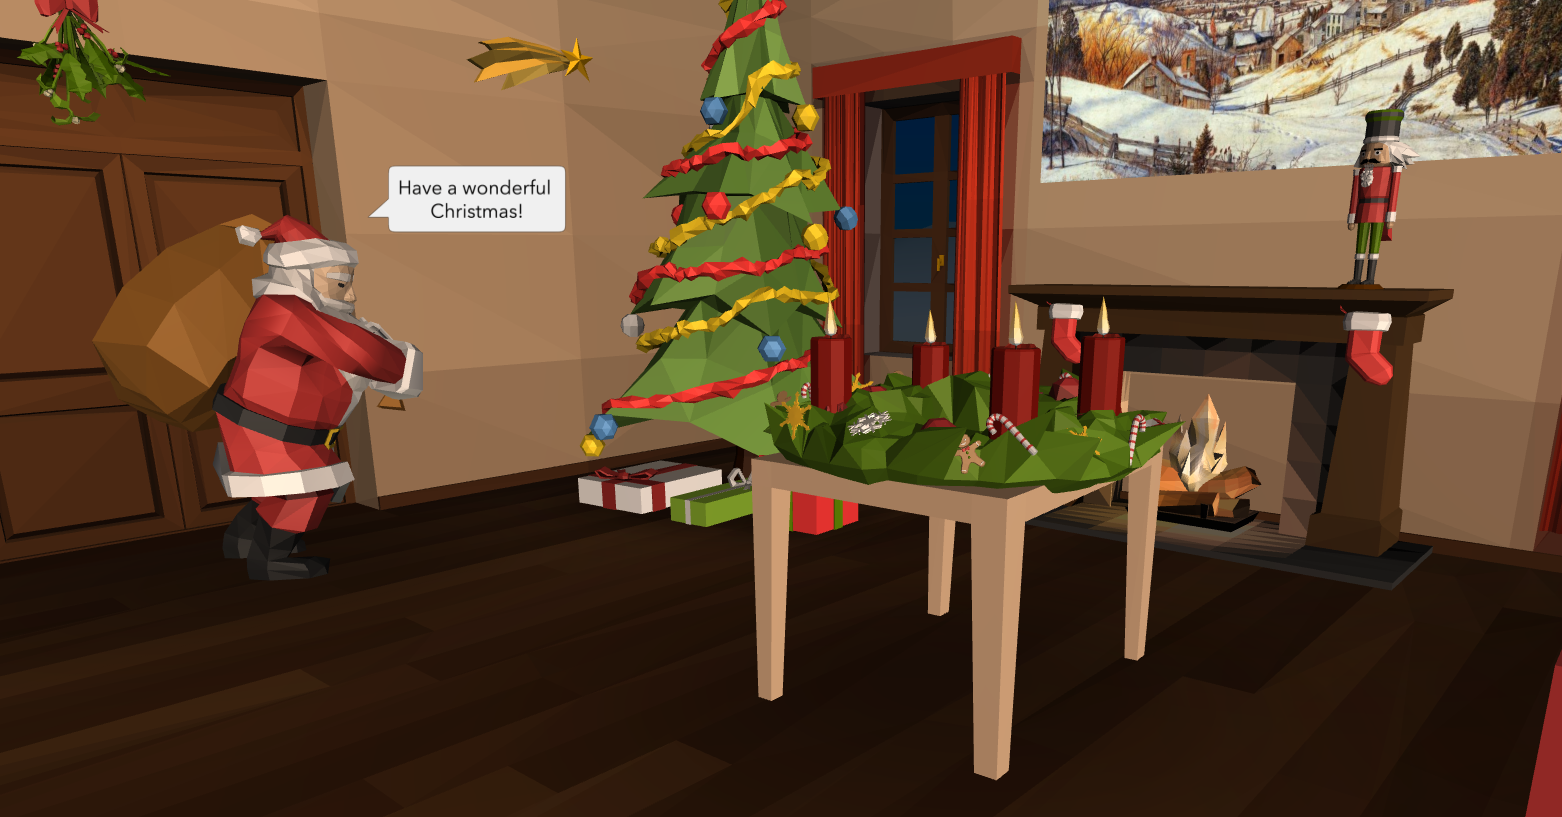 How to build a VR Christmas card – AR & VR in the classroom